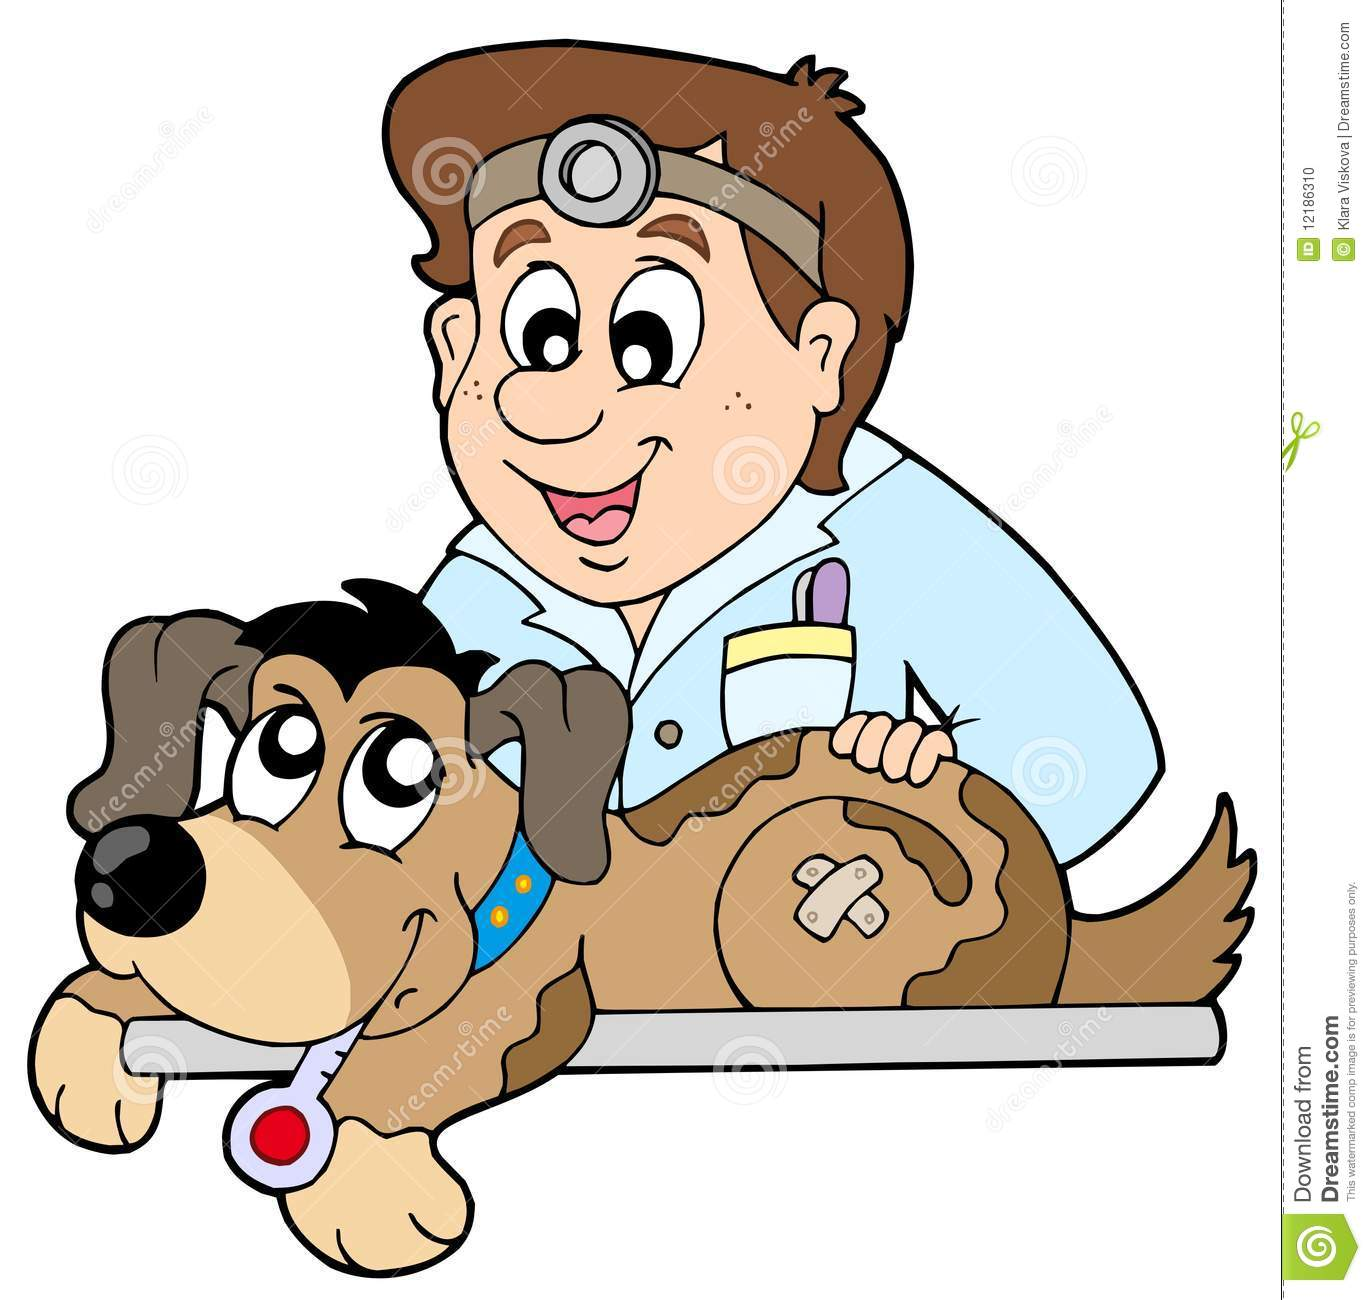 Dog at veterinarian Stock Photo-Dog at veterinarian Stock Photo-2